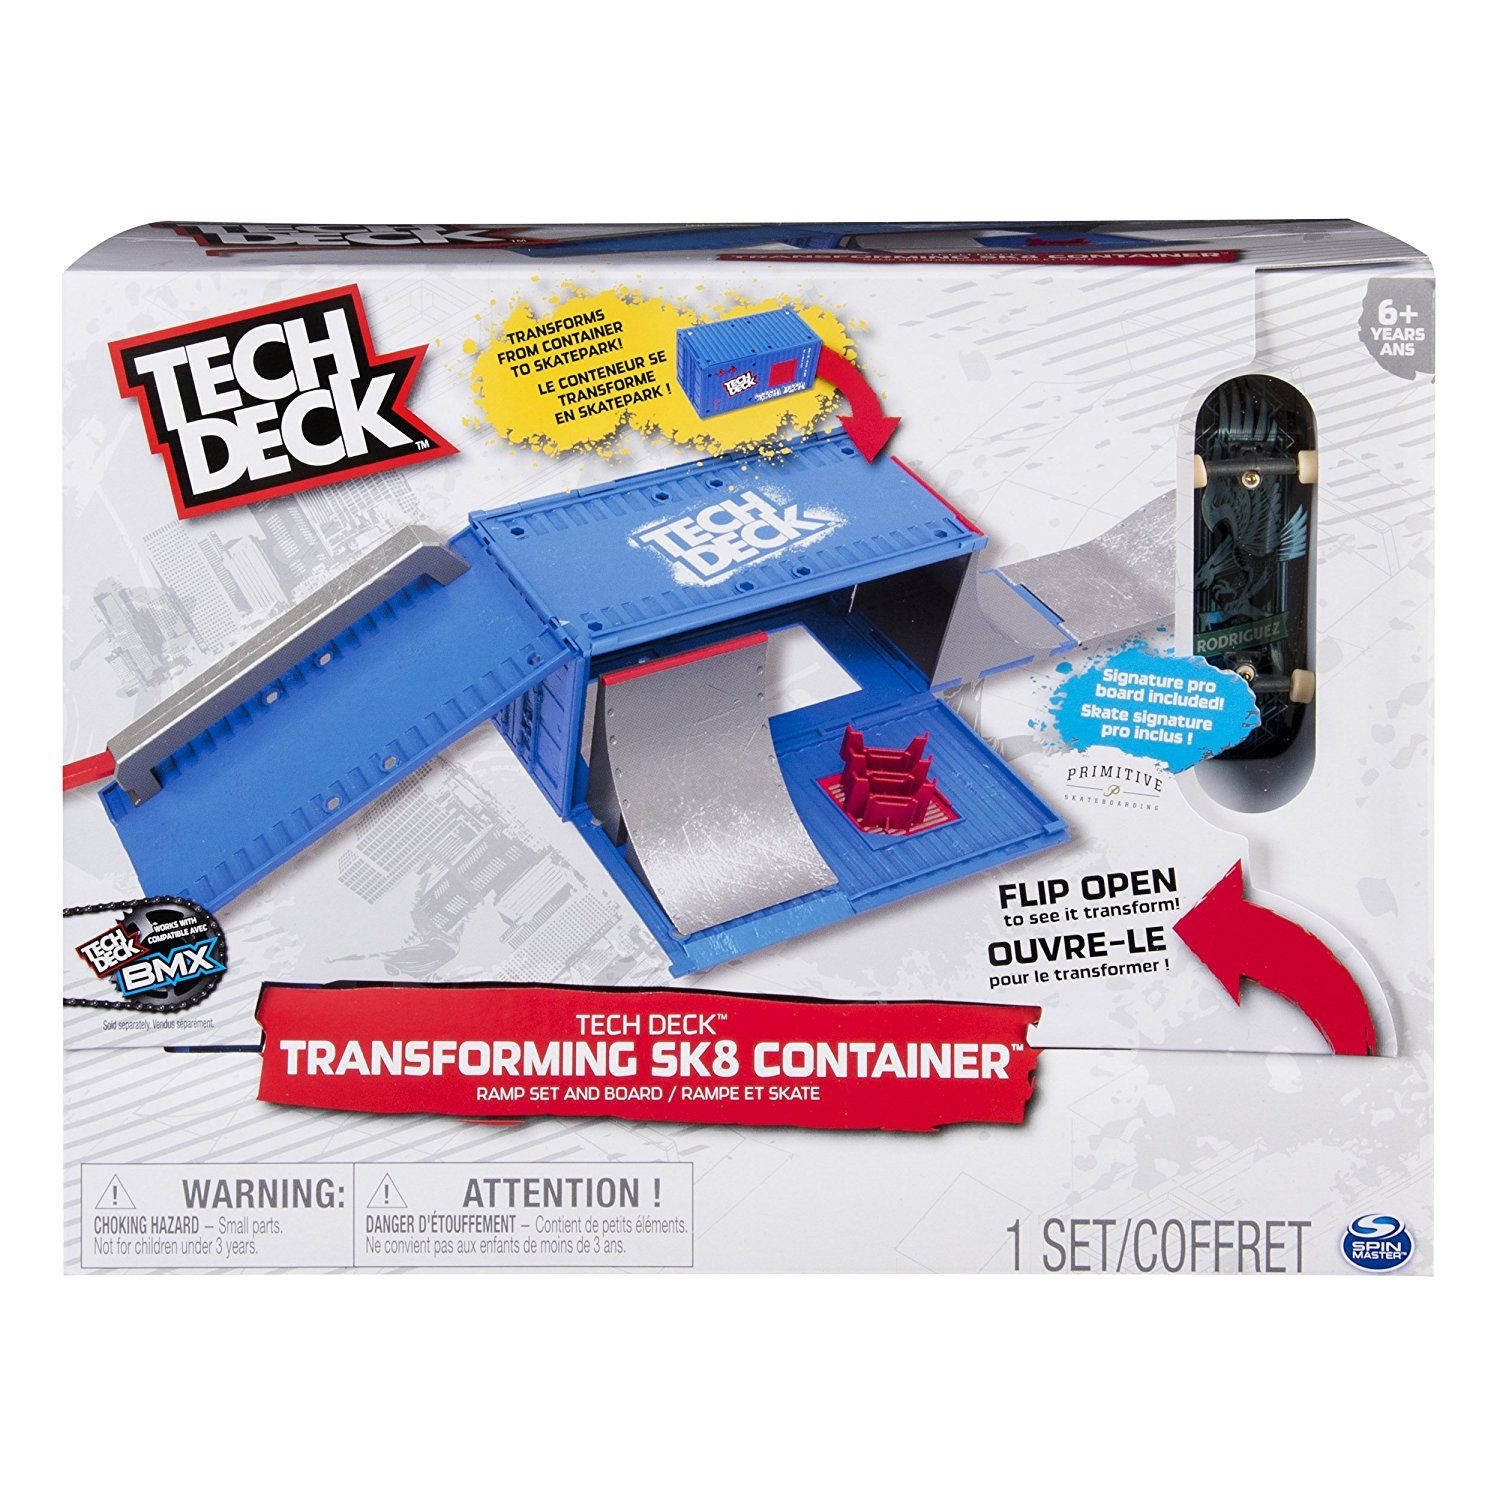 Tech Deck Transforming SK8 Container with